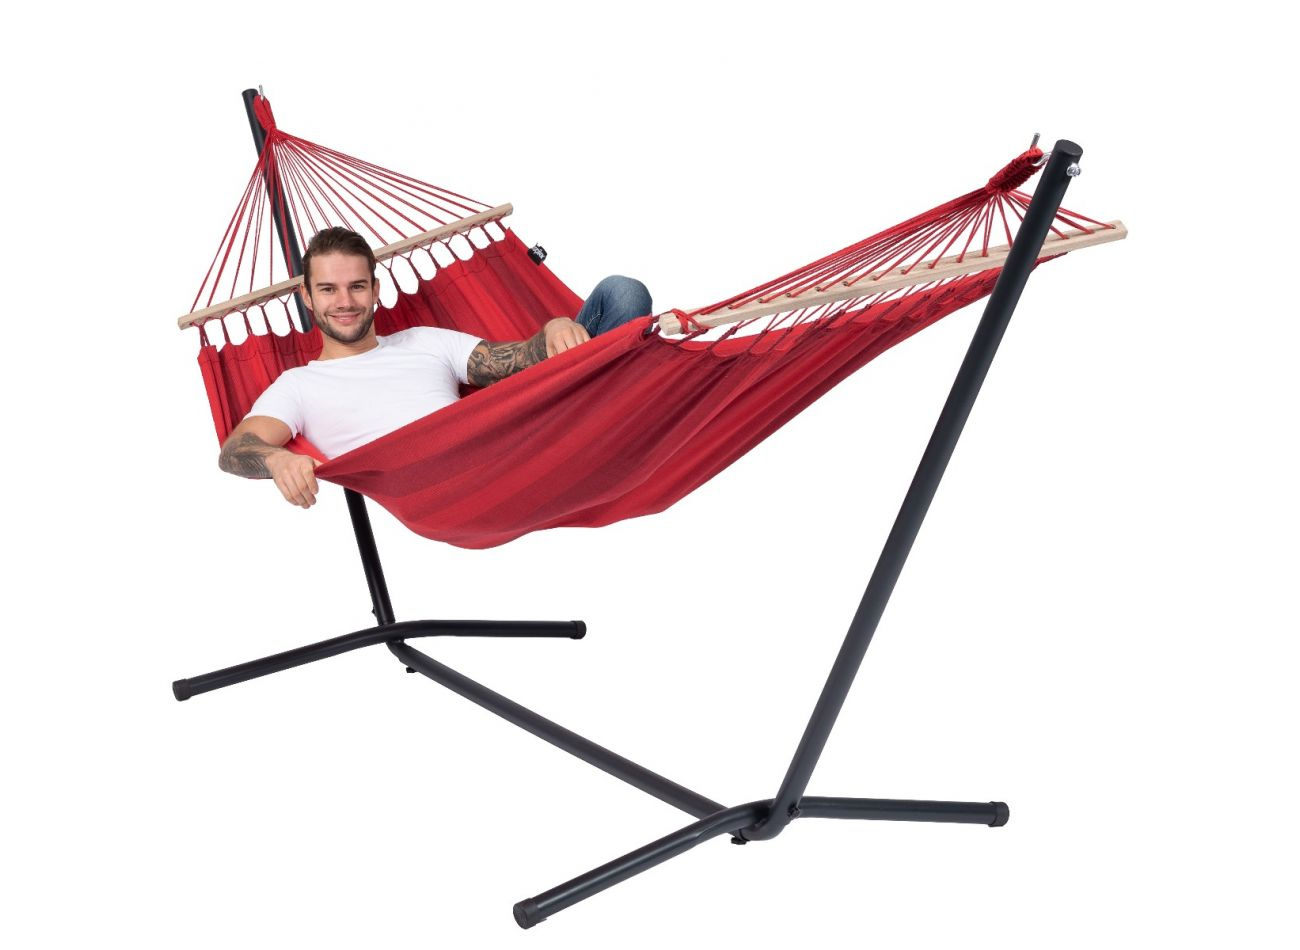 Hängematte mit Gestell 1 Person Easy & Relax Red